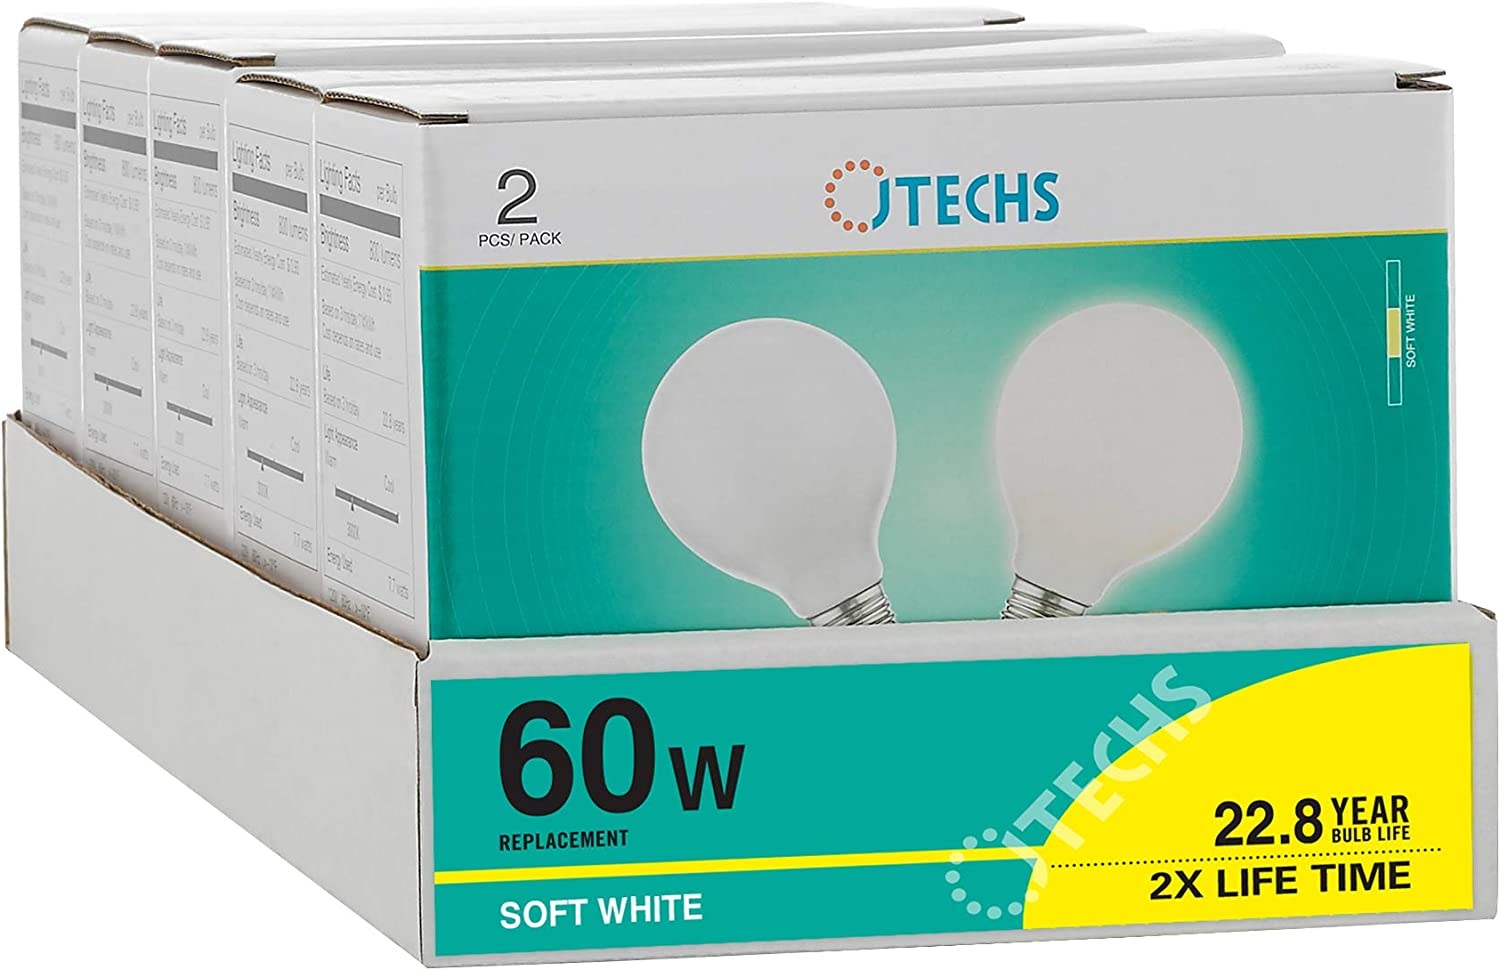 Gives a Good Representation of How You Will Look in The Workplace and Low Light Areas JTechs 10 Pack Frosted G25 LED 60 Watt Replacement Providing 800 Lumens of Light Often Used in Bathroom